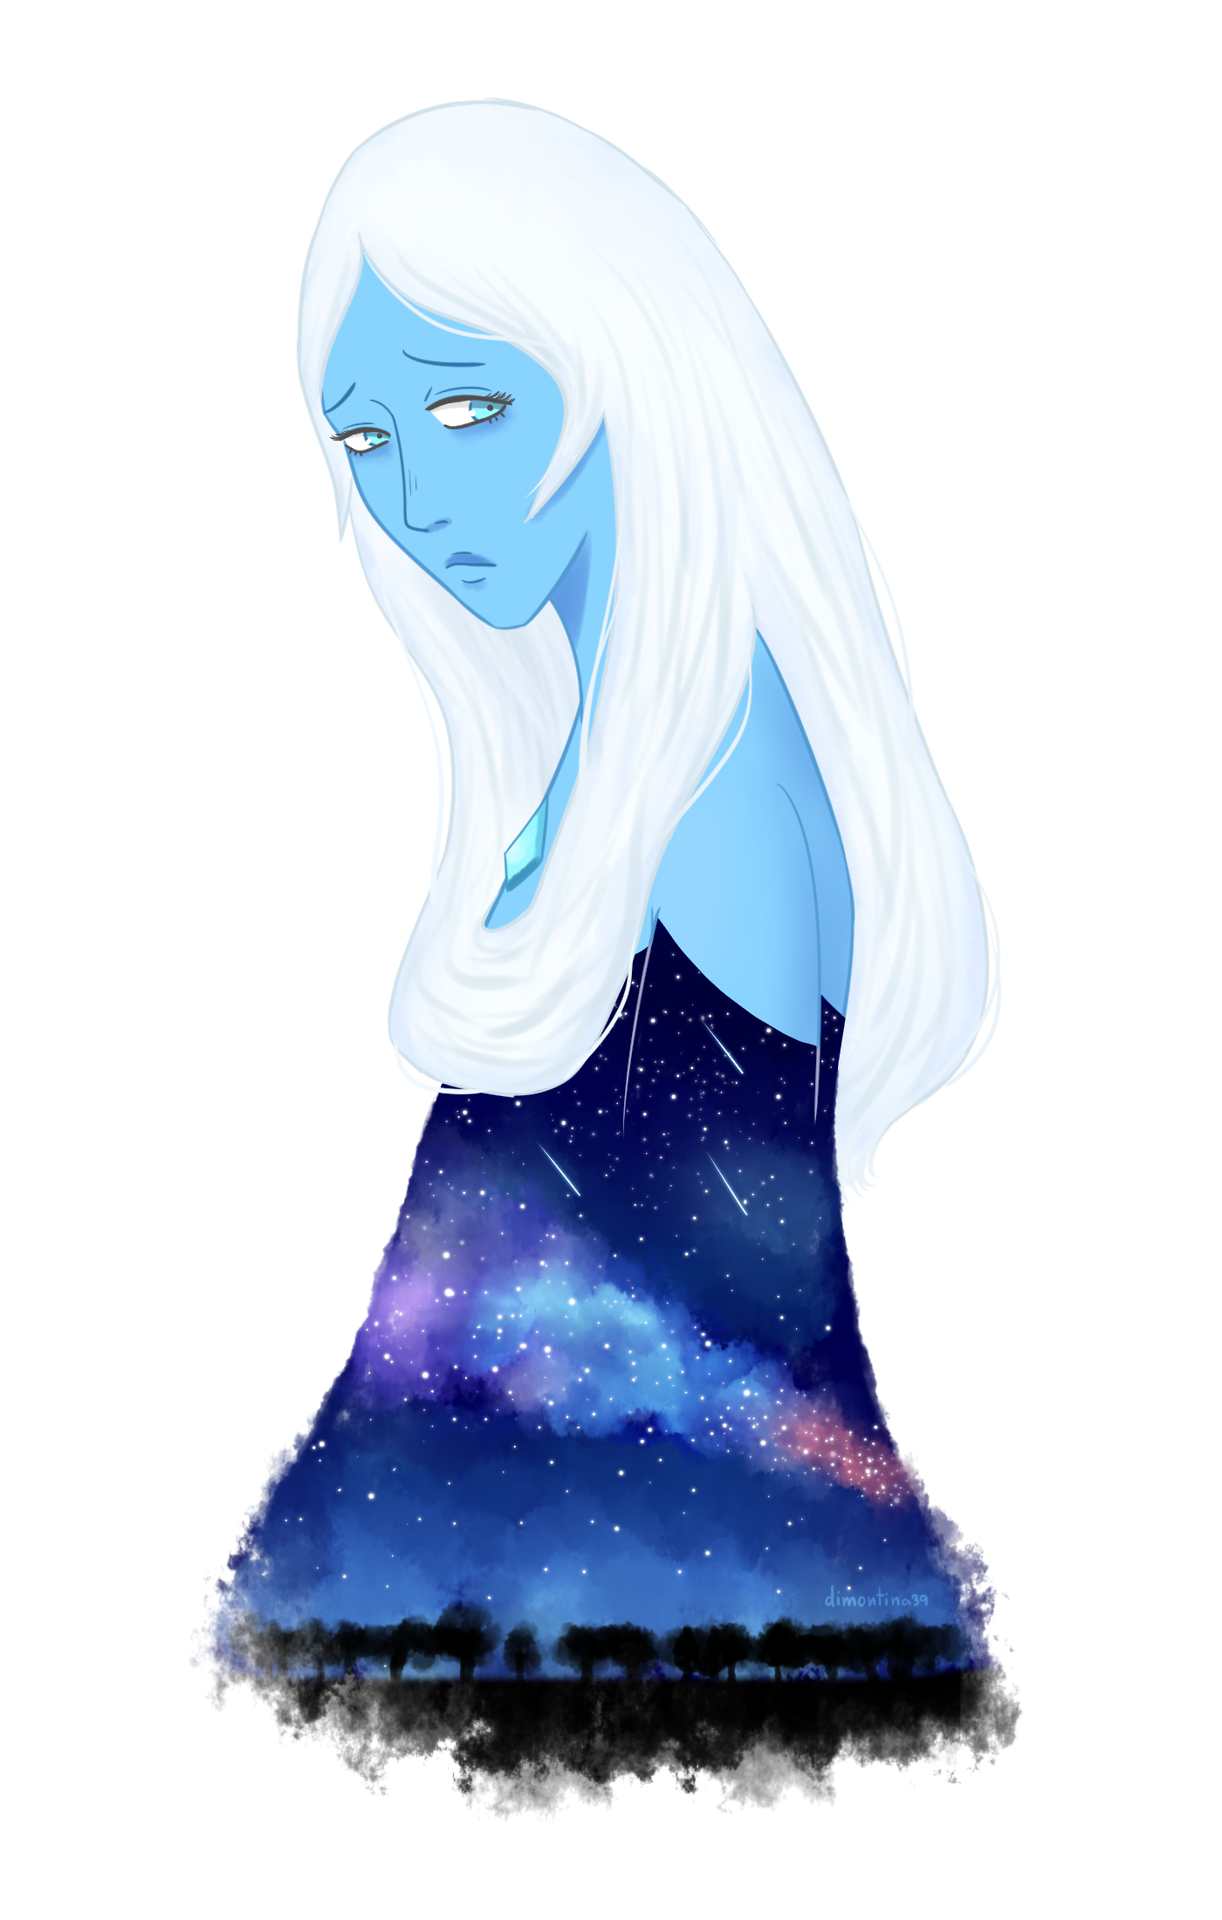 Blue Diamond Edit: Just saw that I wrote my tumblr name wrong lol. Never mind XD